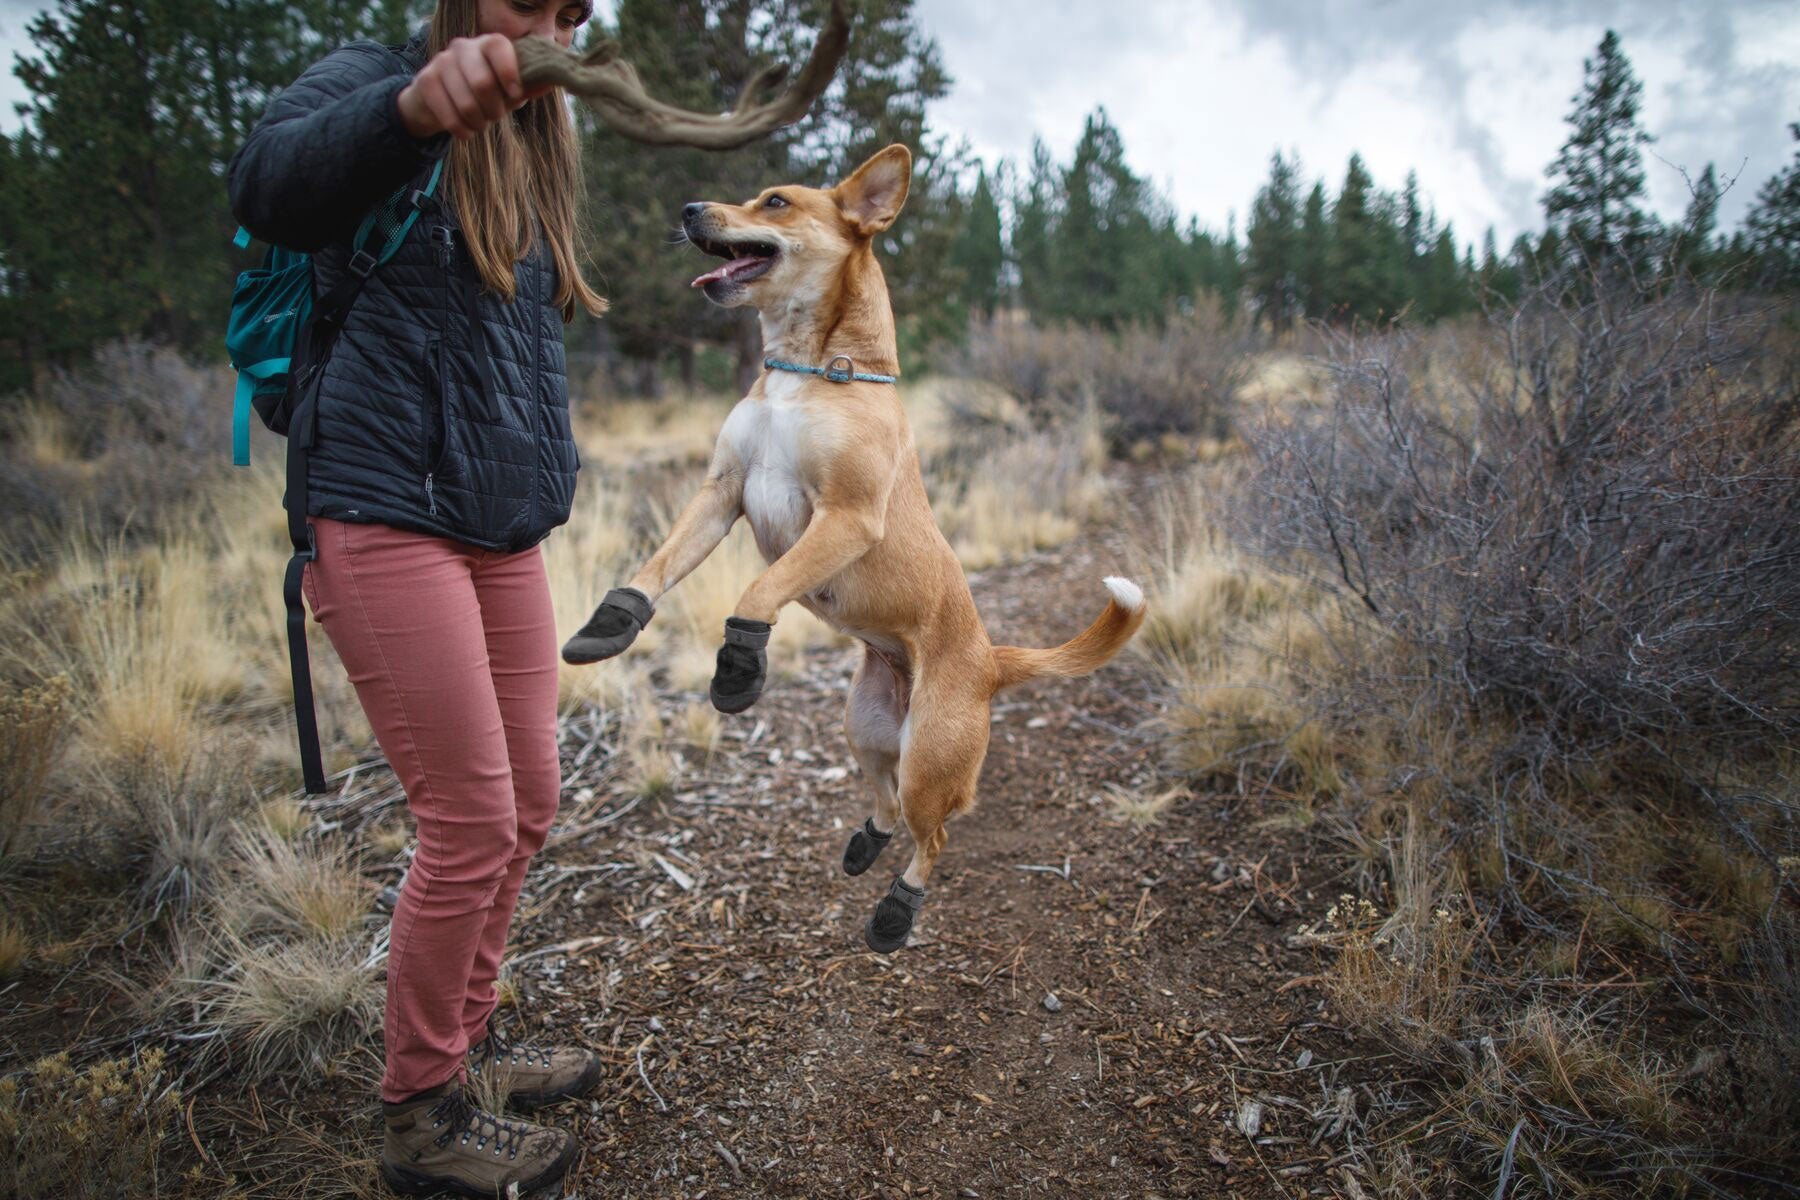 Human holds up stick while dog in summit trex waterproof dog shoes jumps up to grab it.